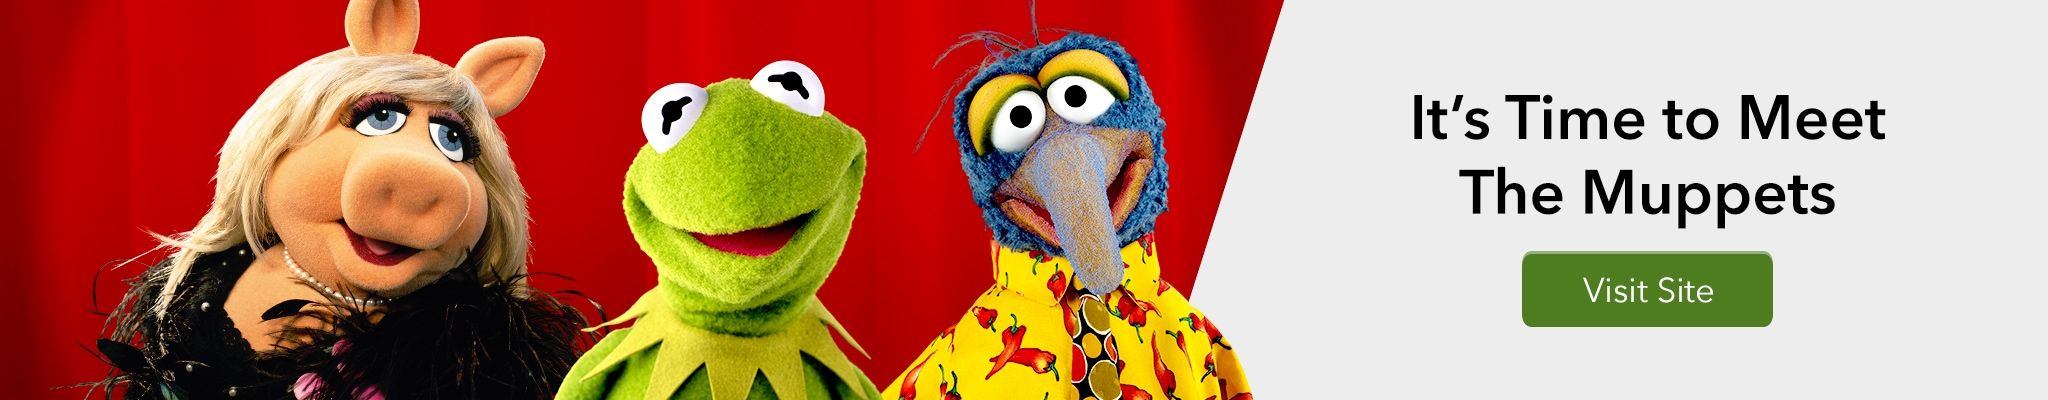 It's Time to Meet The Muppets - Visit Site